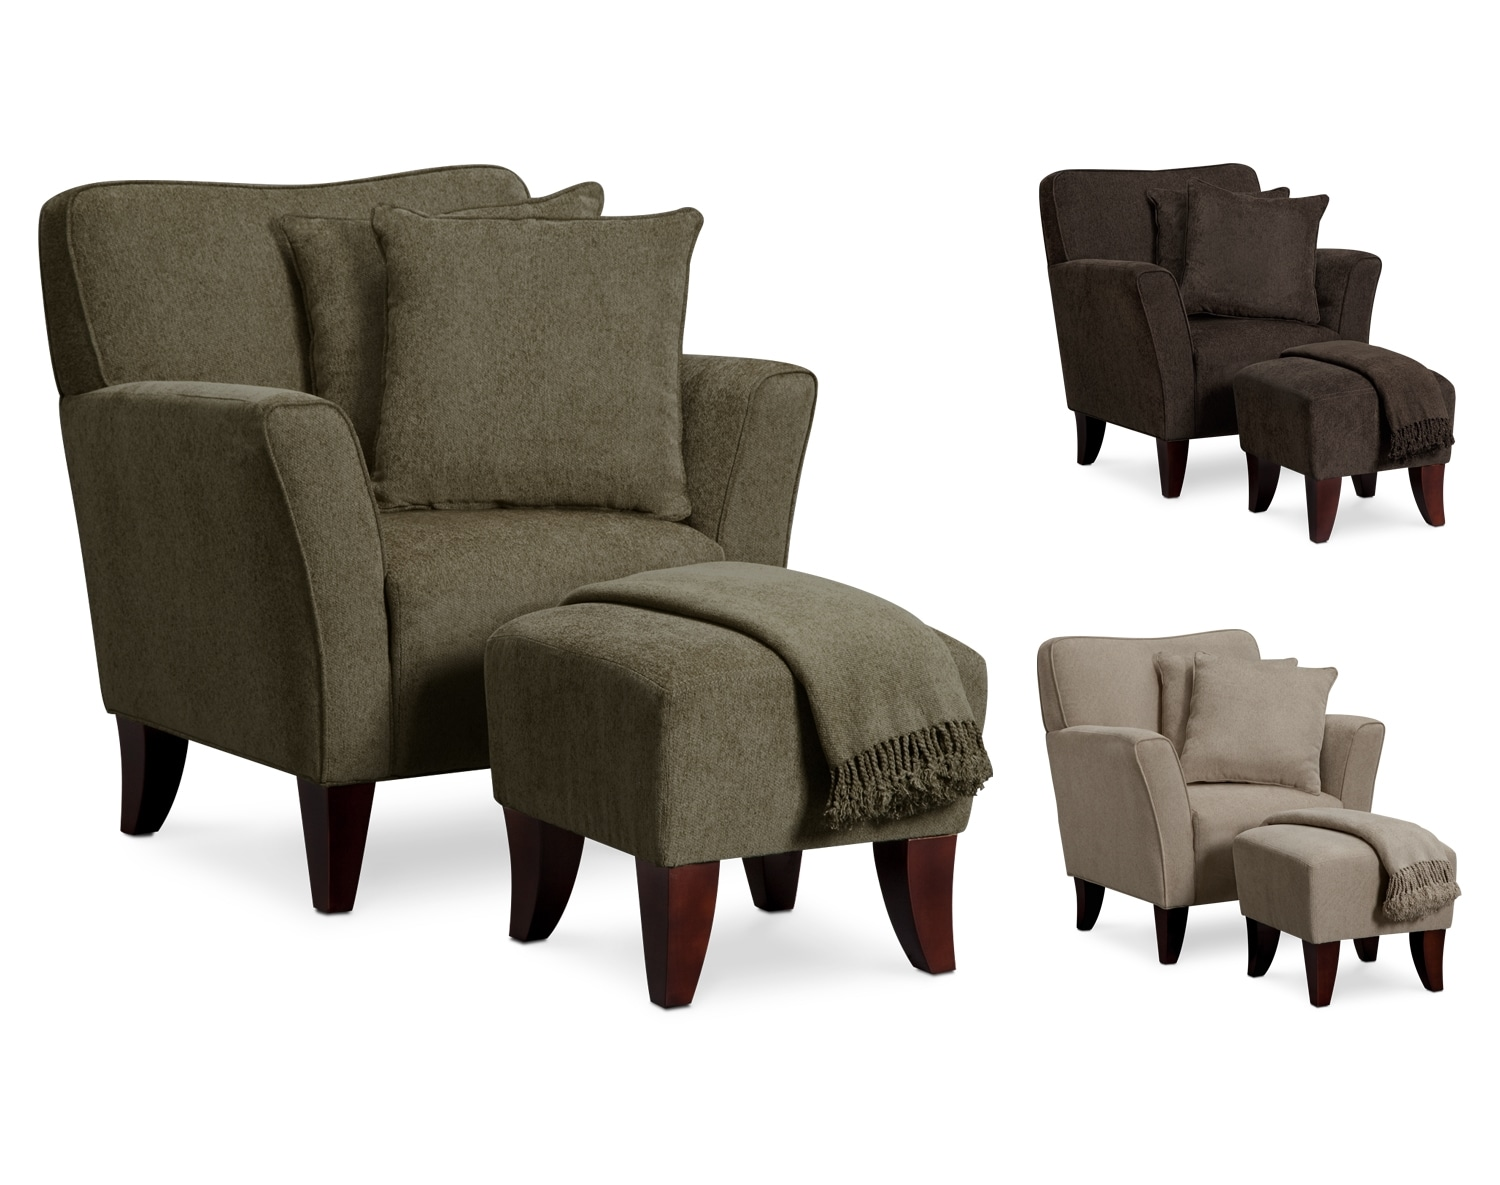 Living Room Furniture - The Dorset Collection - Chair Set w_ Pillows and Throw